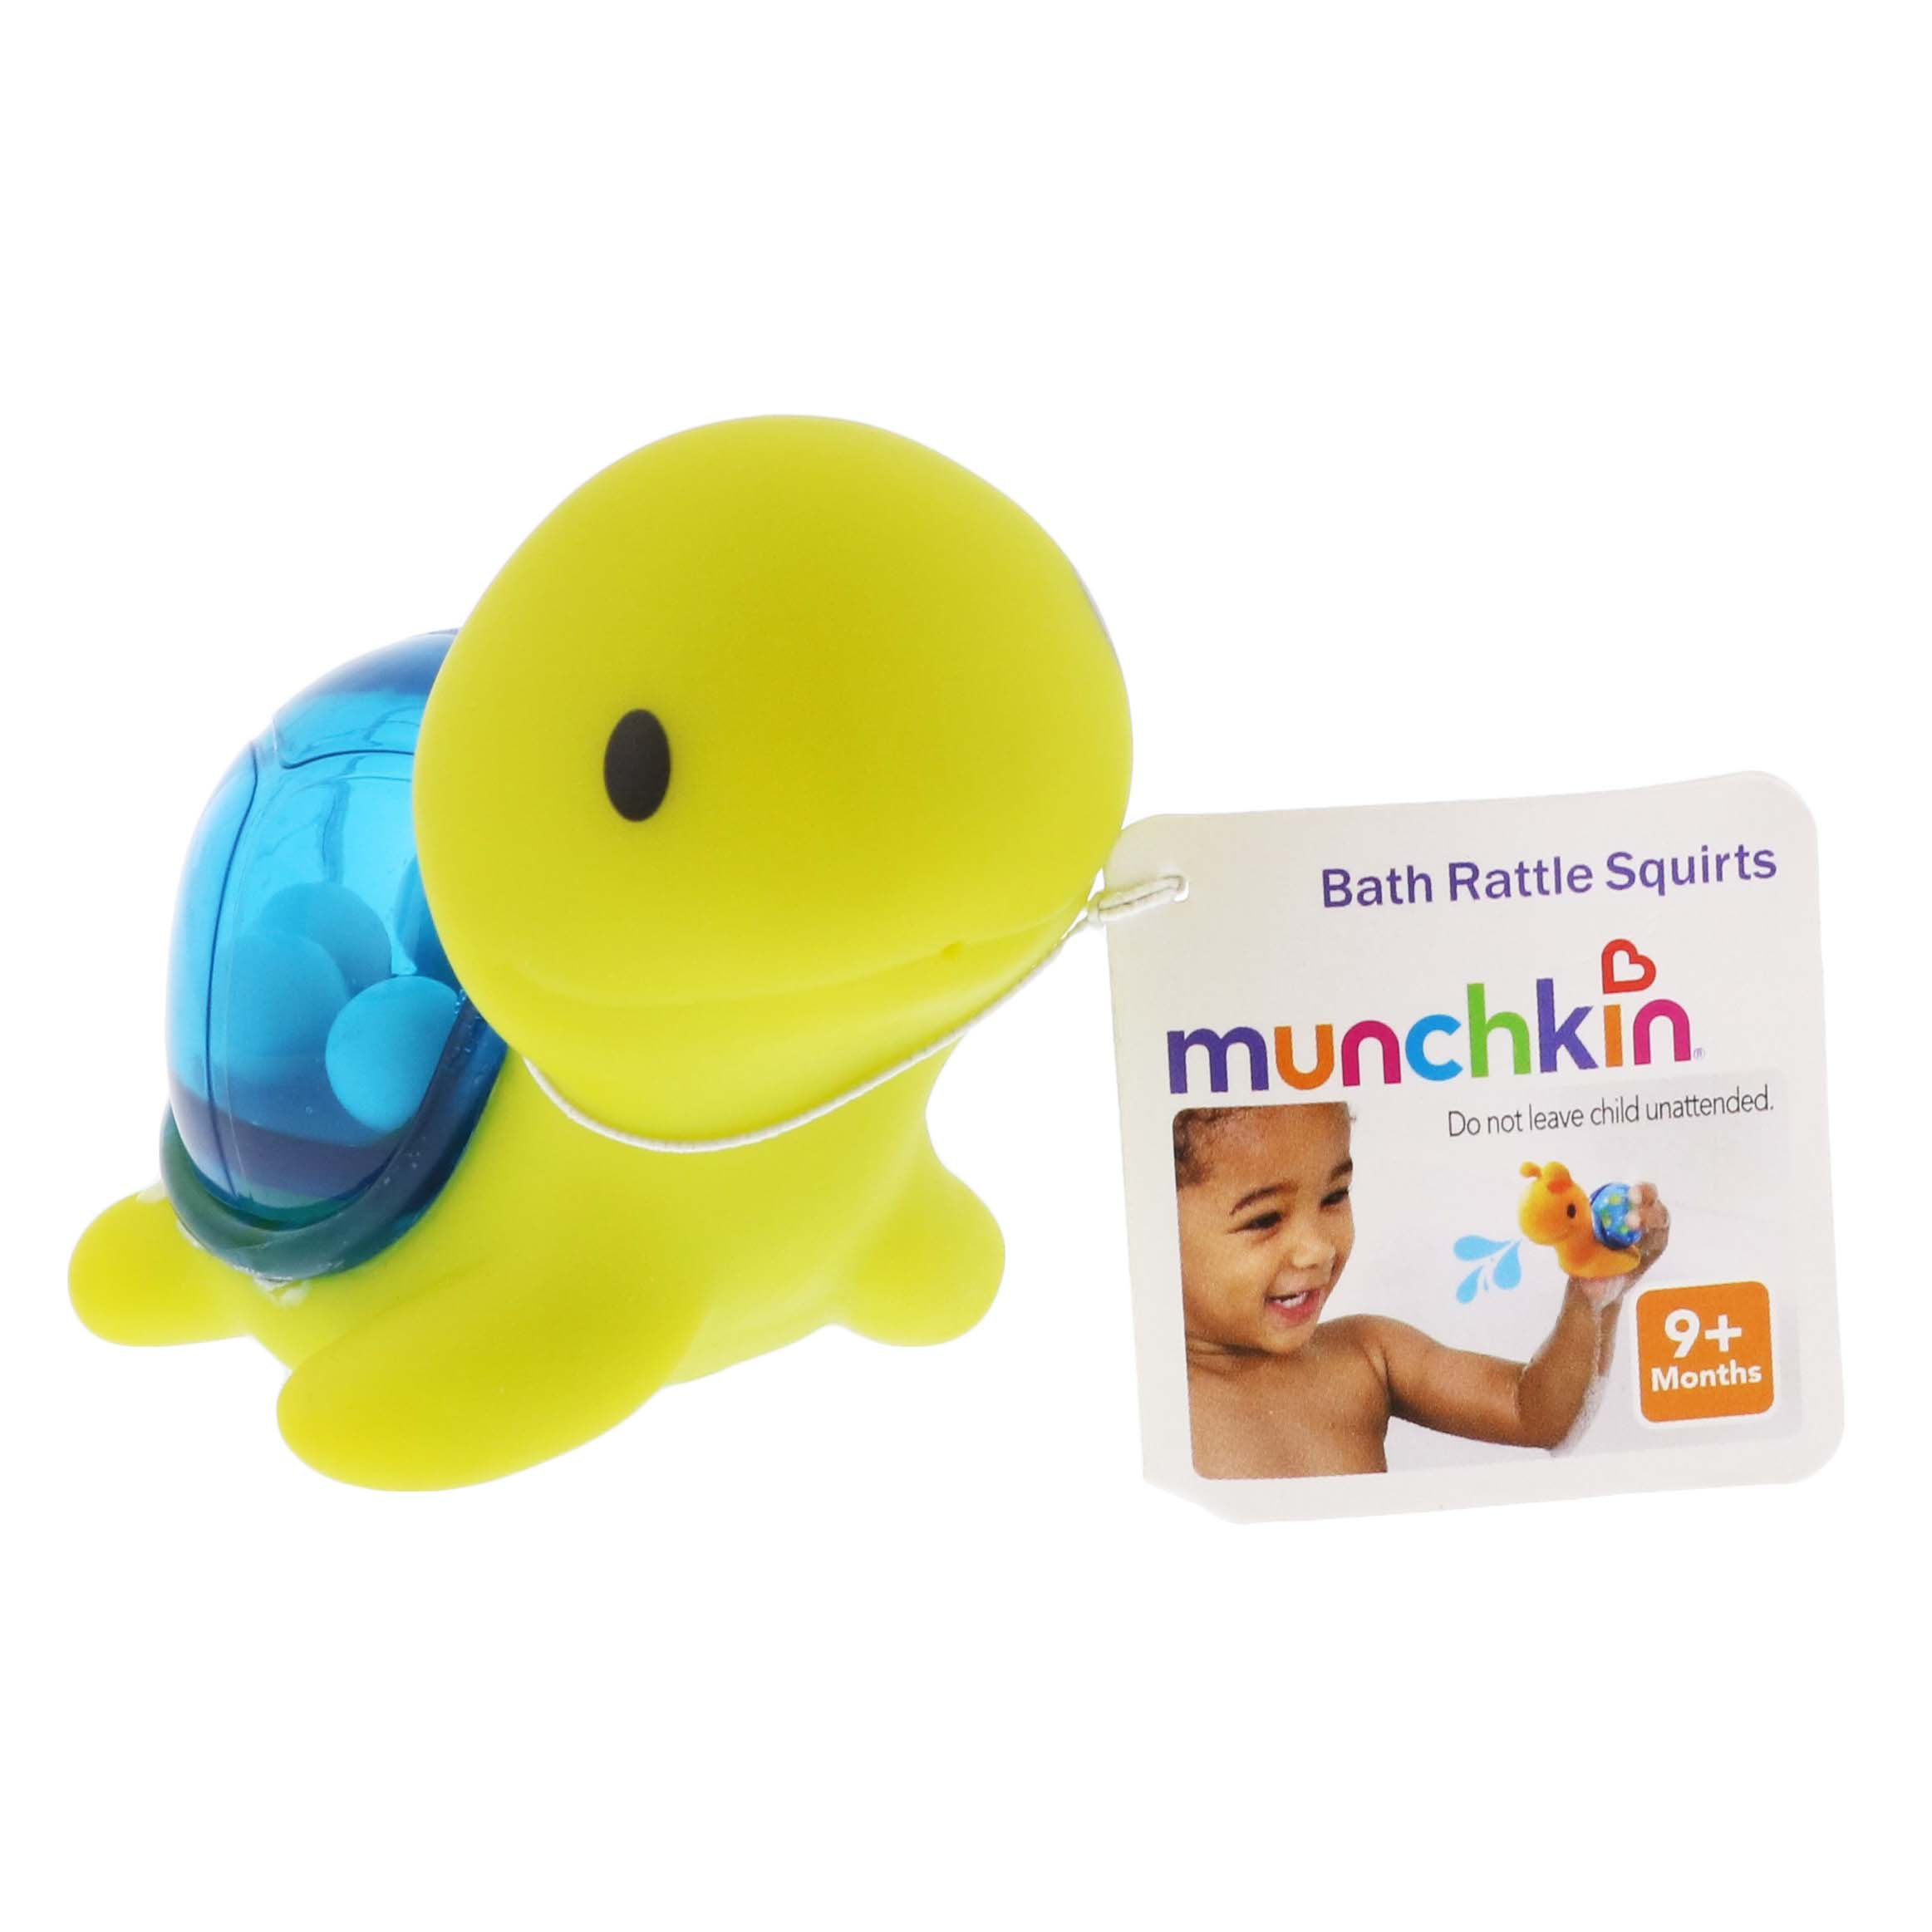 Munchkin Bath Rattle Squirts ‑ Shop Baby Toys at H‑E‑B